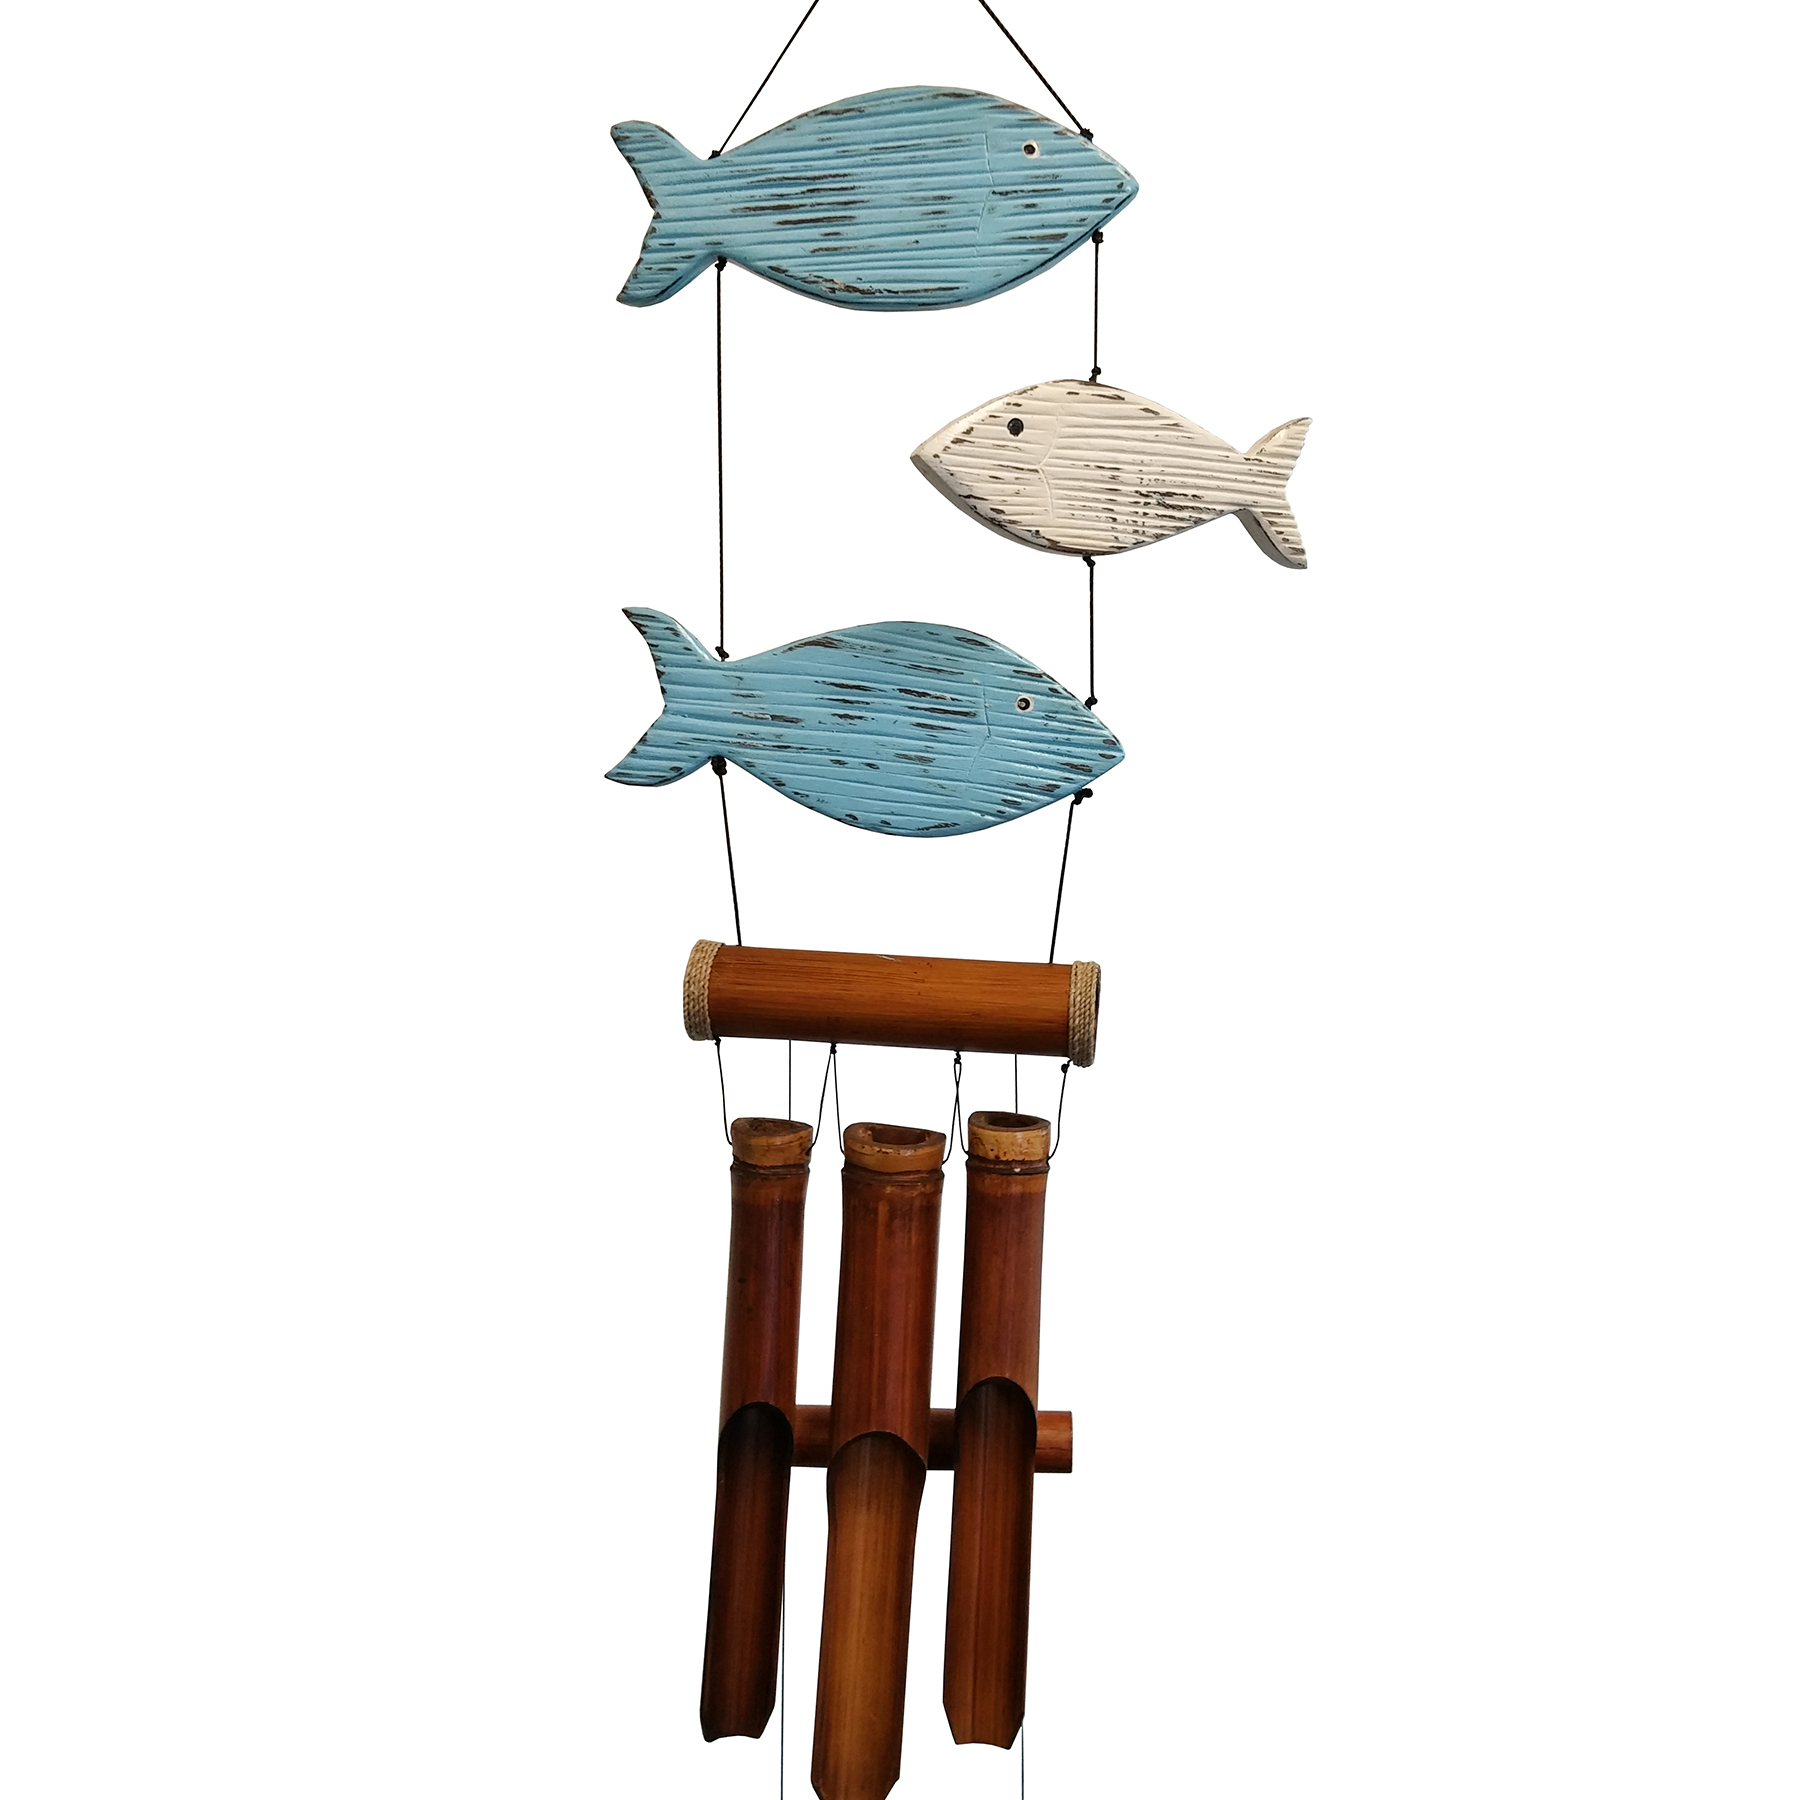 195 - Blue & White Fun Fish Bamboo Wind Chime